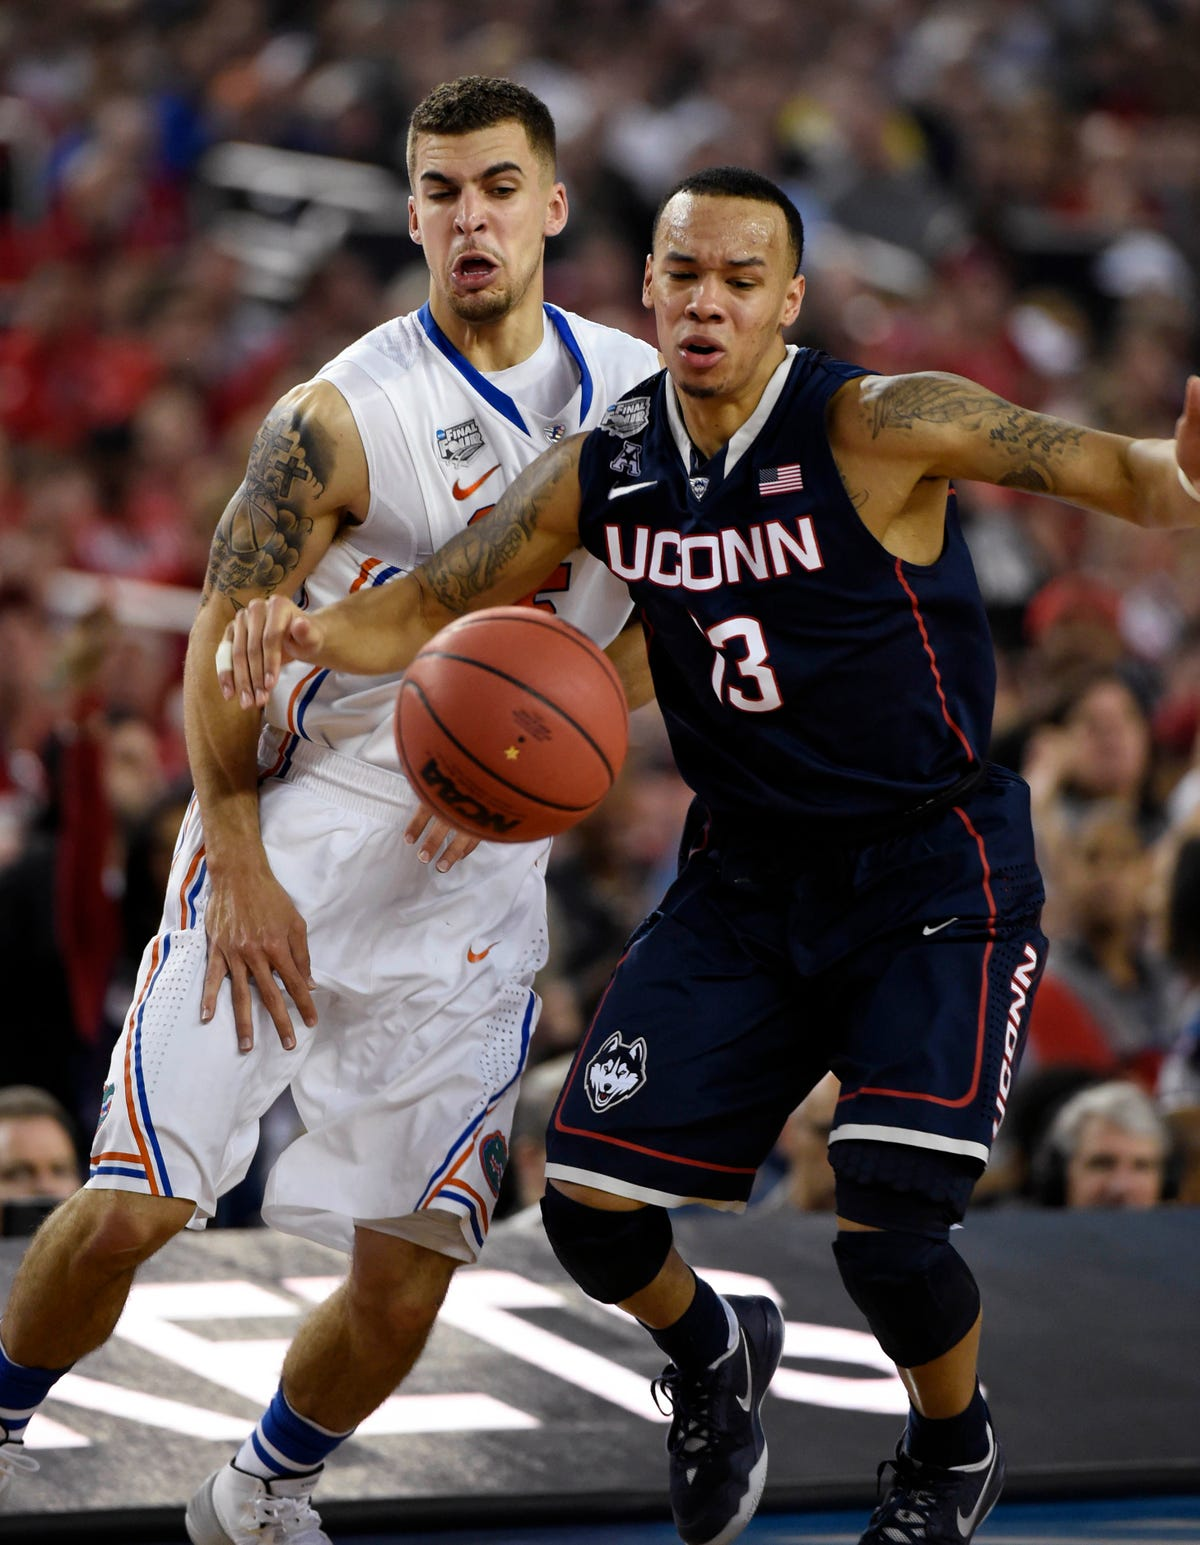 Ranking top 20 point guards for 2014 NBA draft